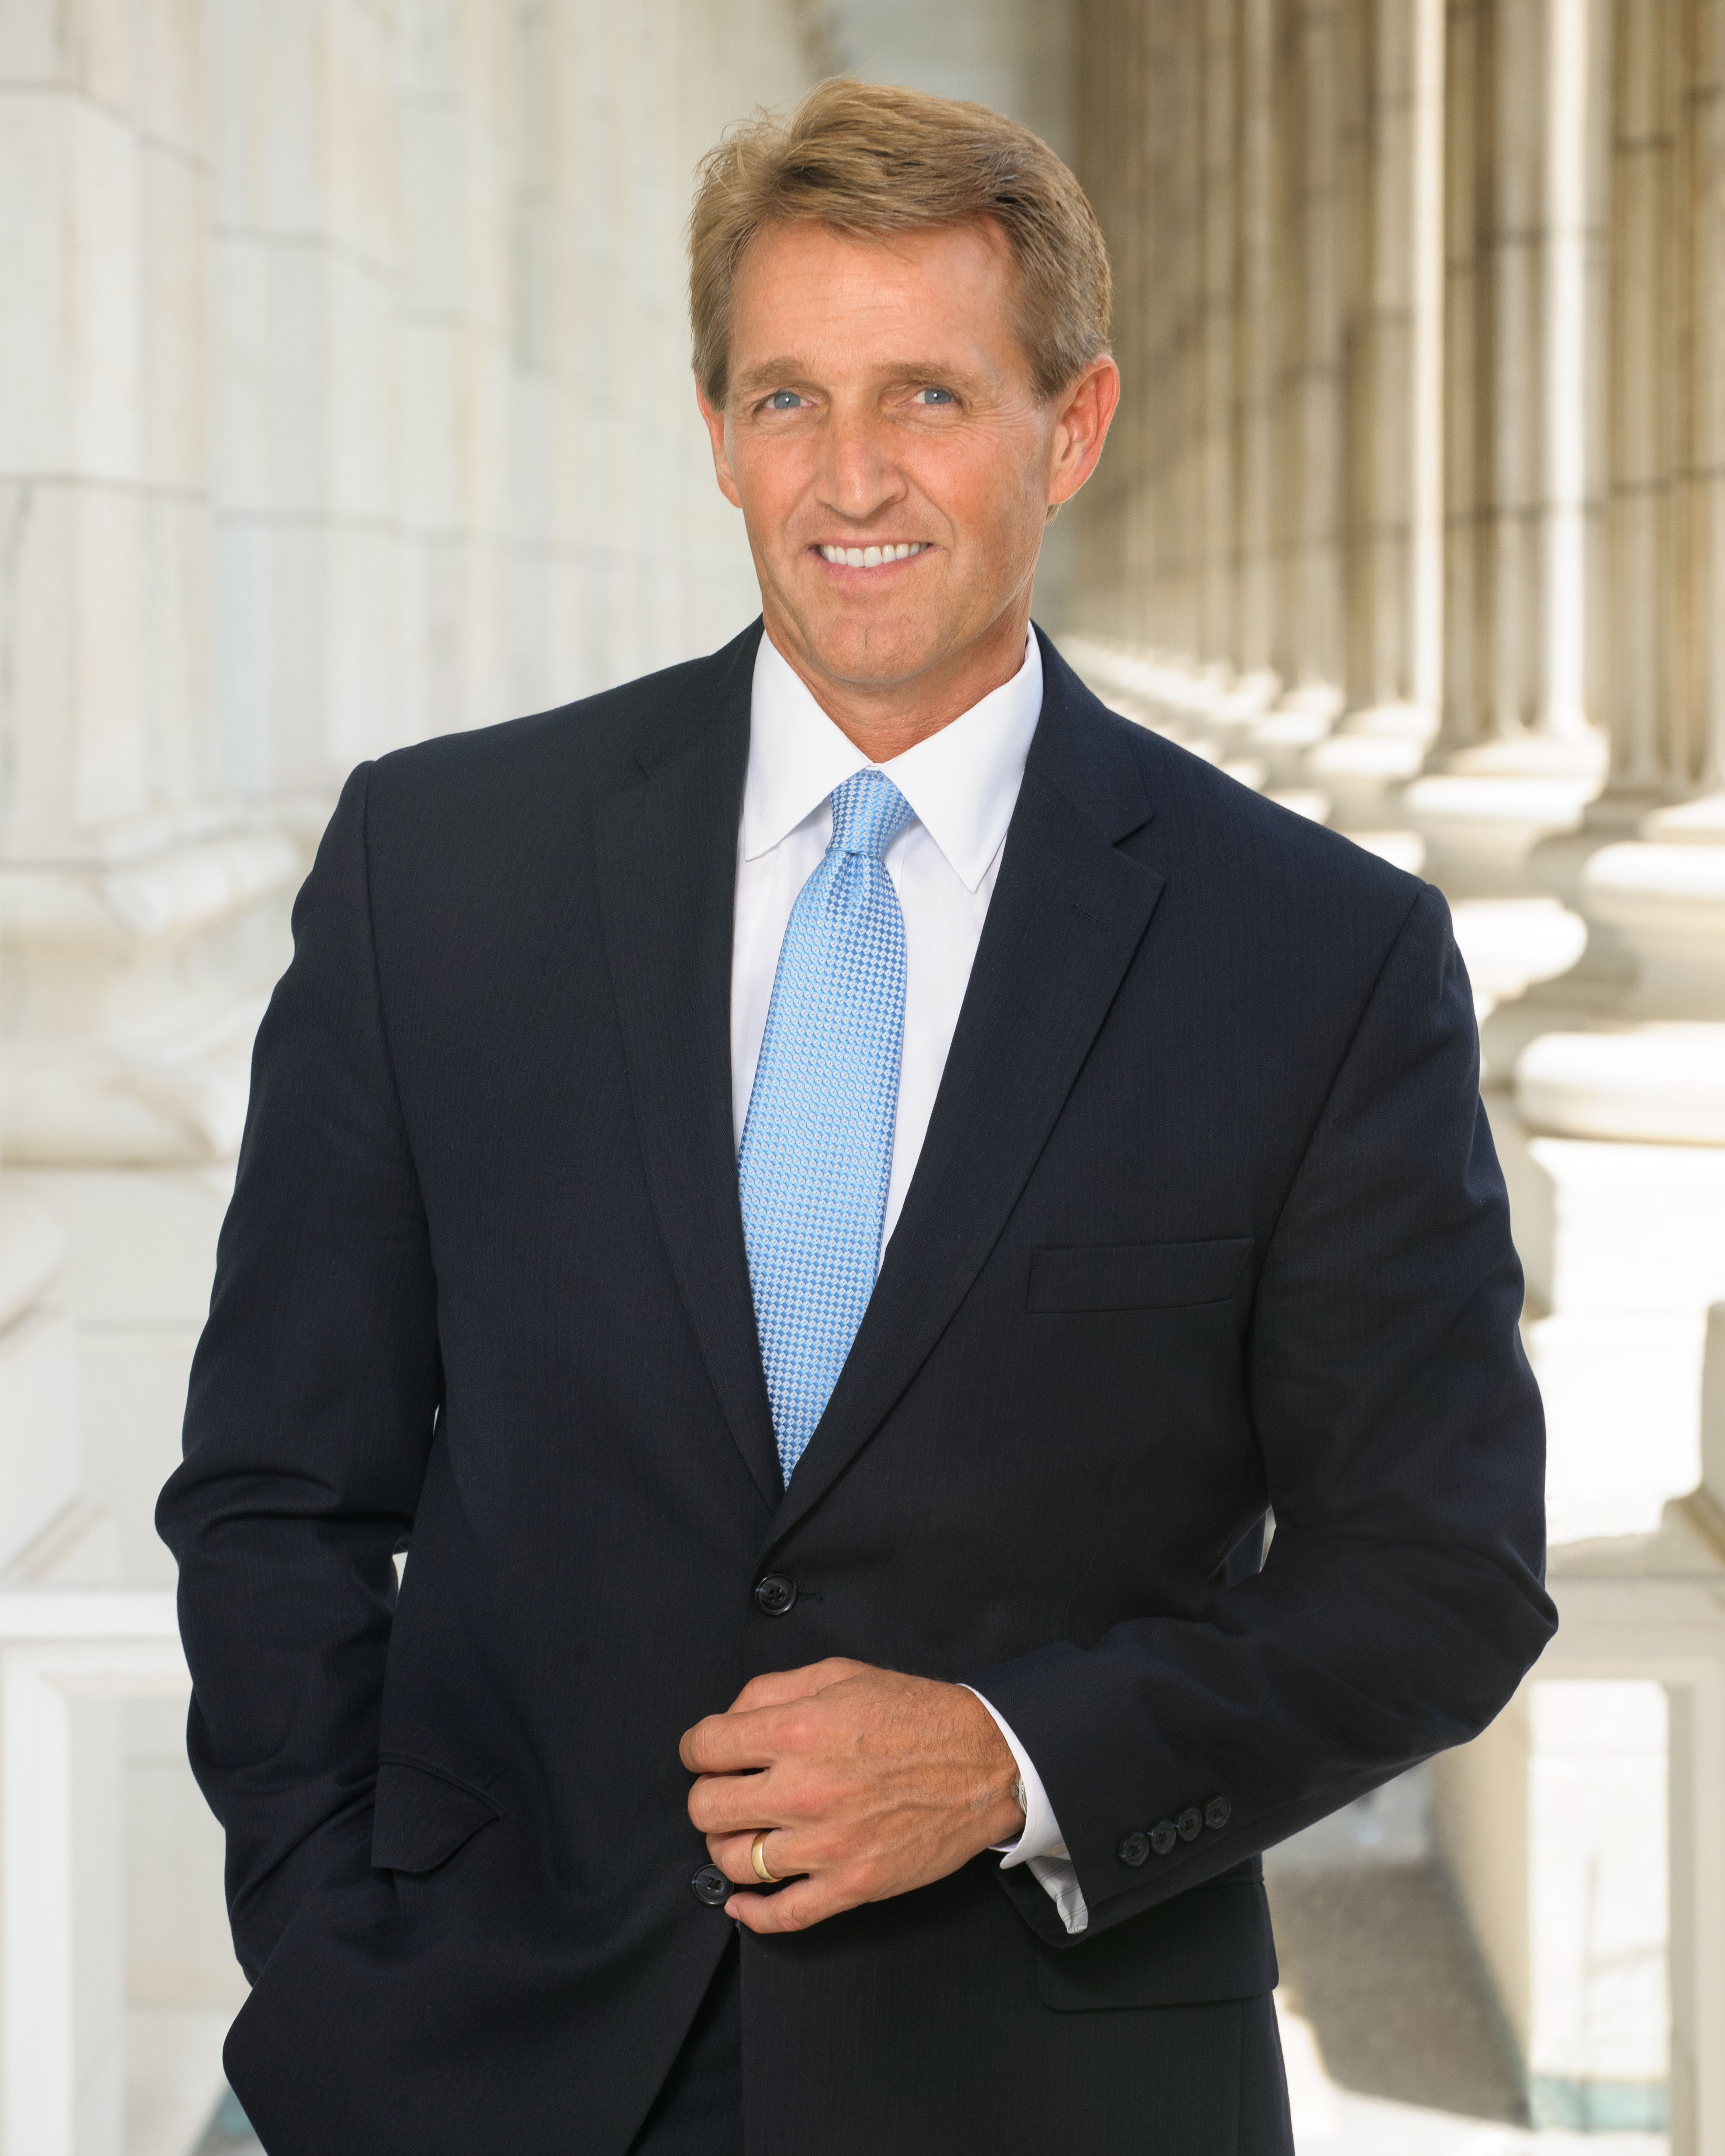 Senator Jeff Flake (R-Arizona)